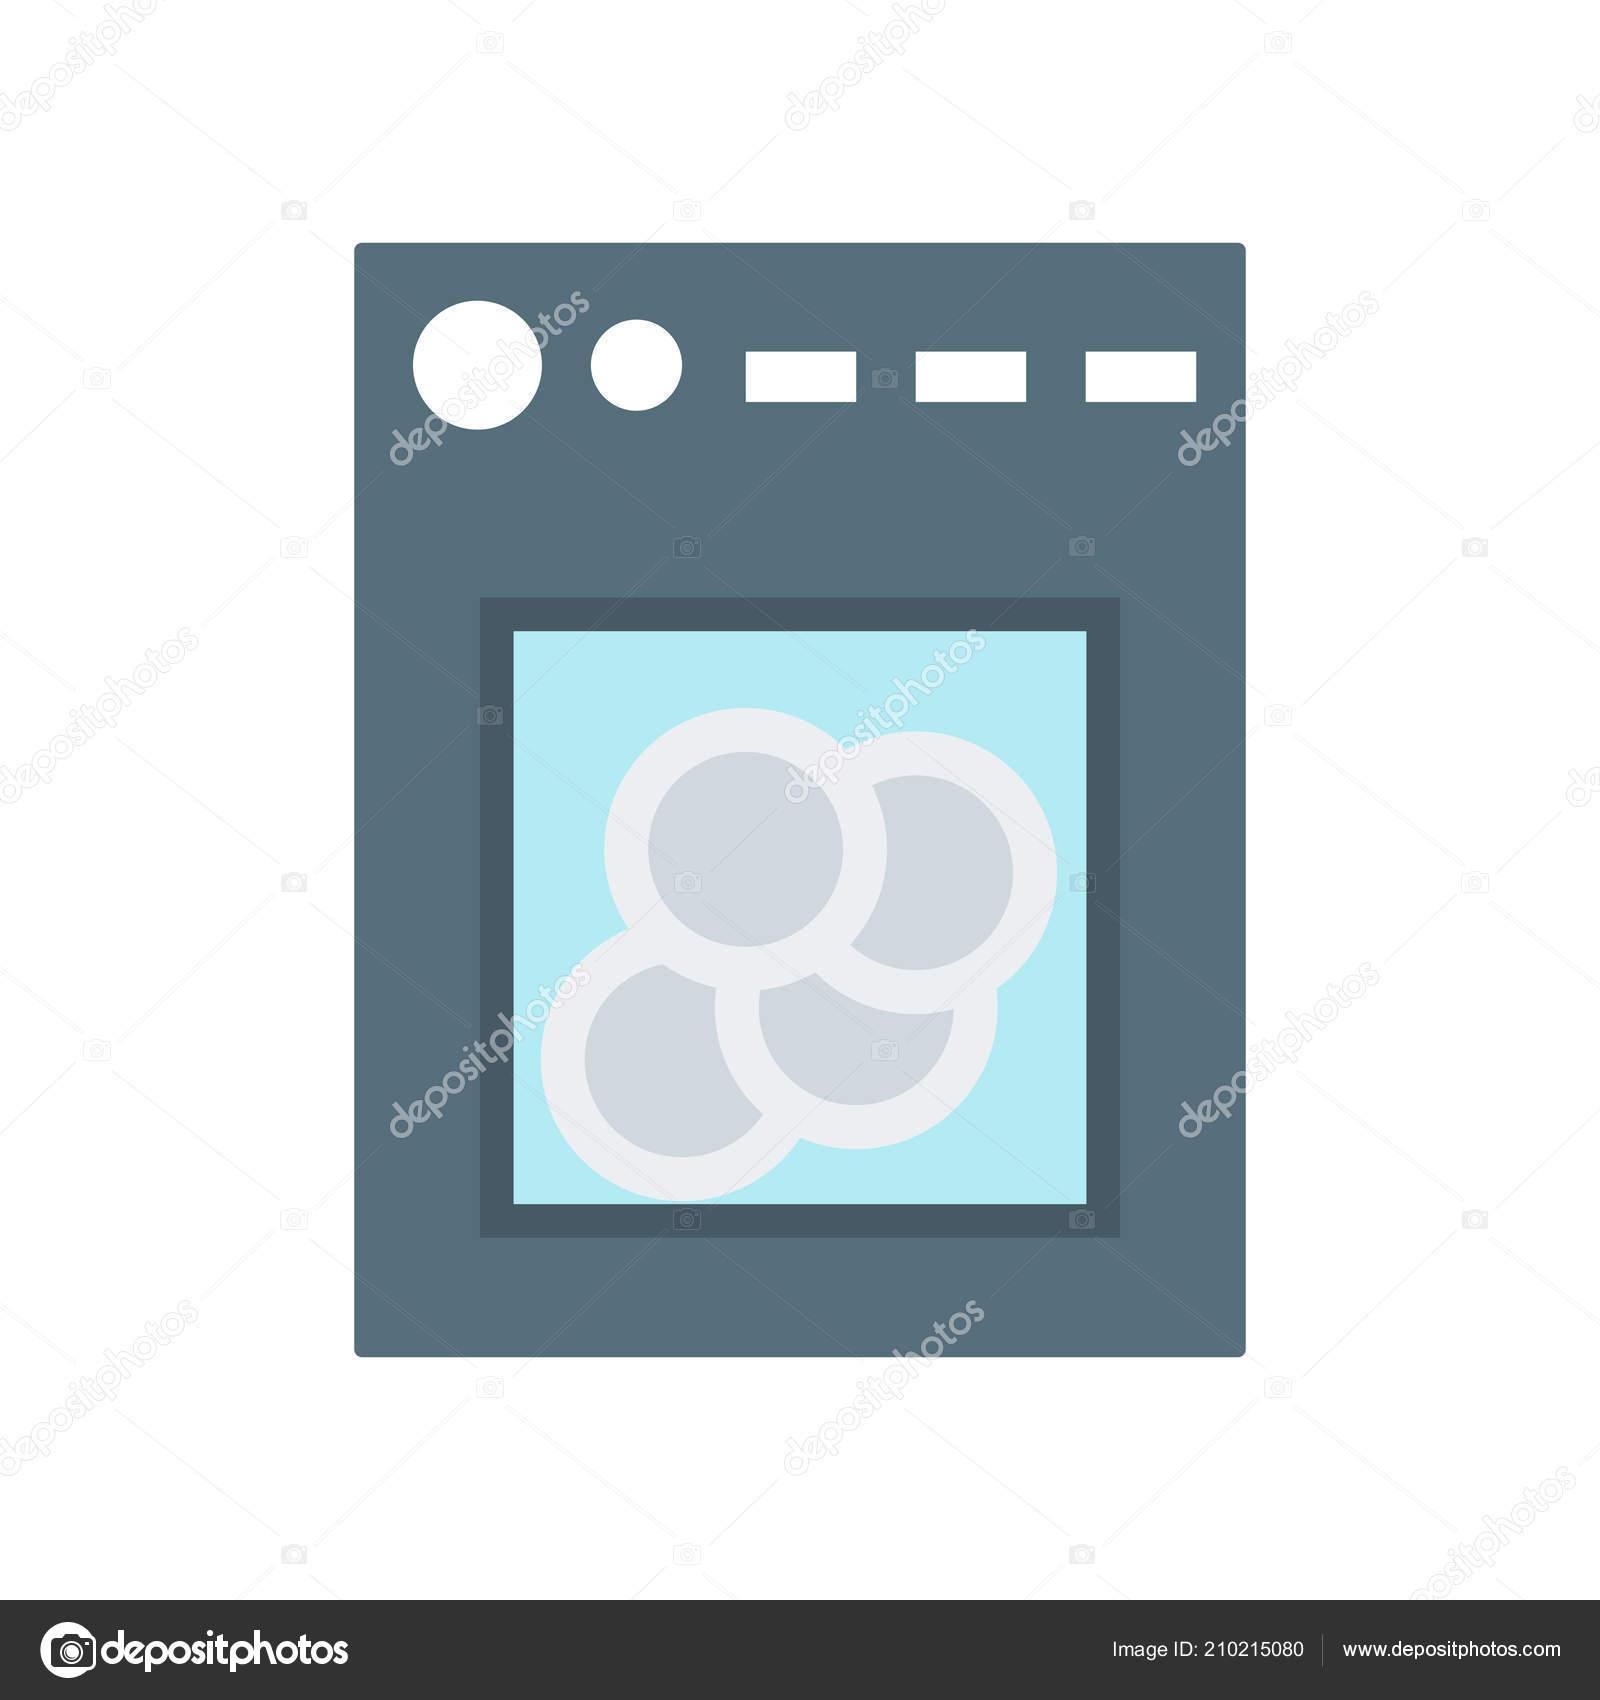 dishwasher icon vector sign